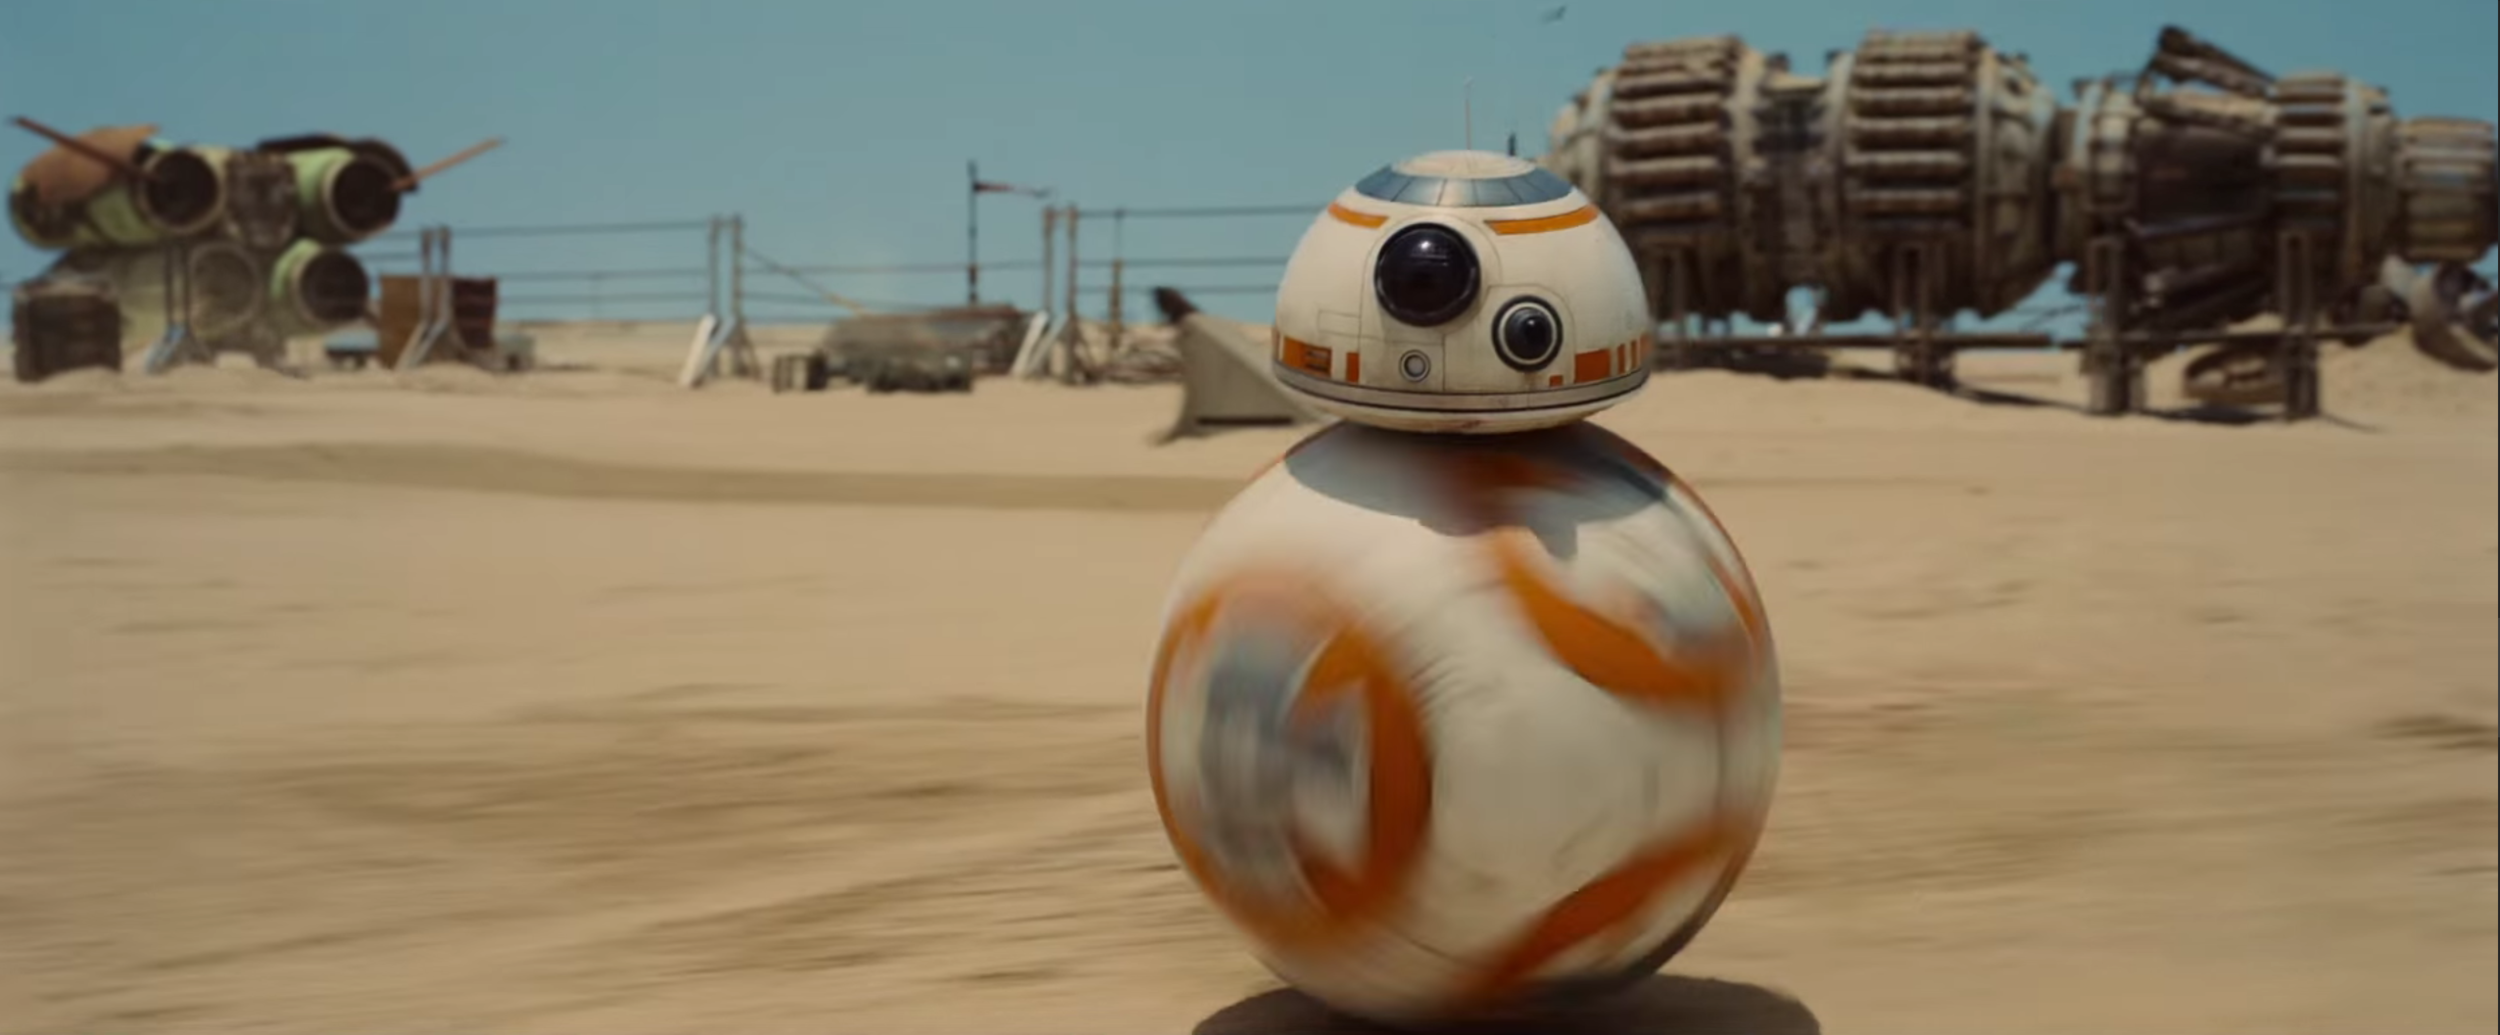 They actually built a real life BB-8 droid for the new movie.